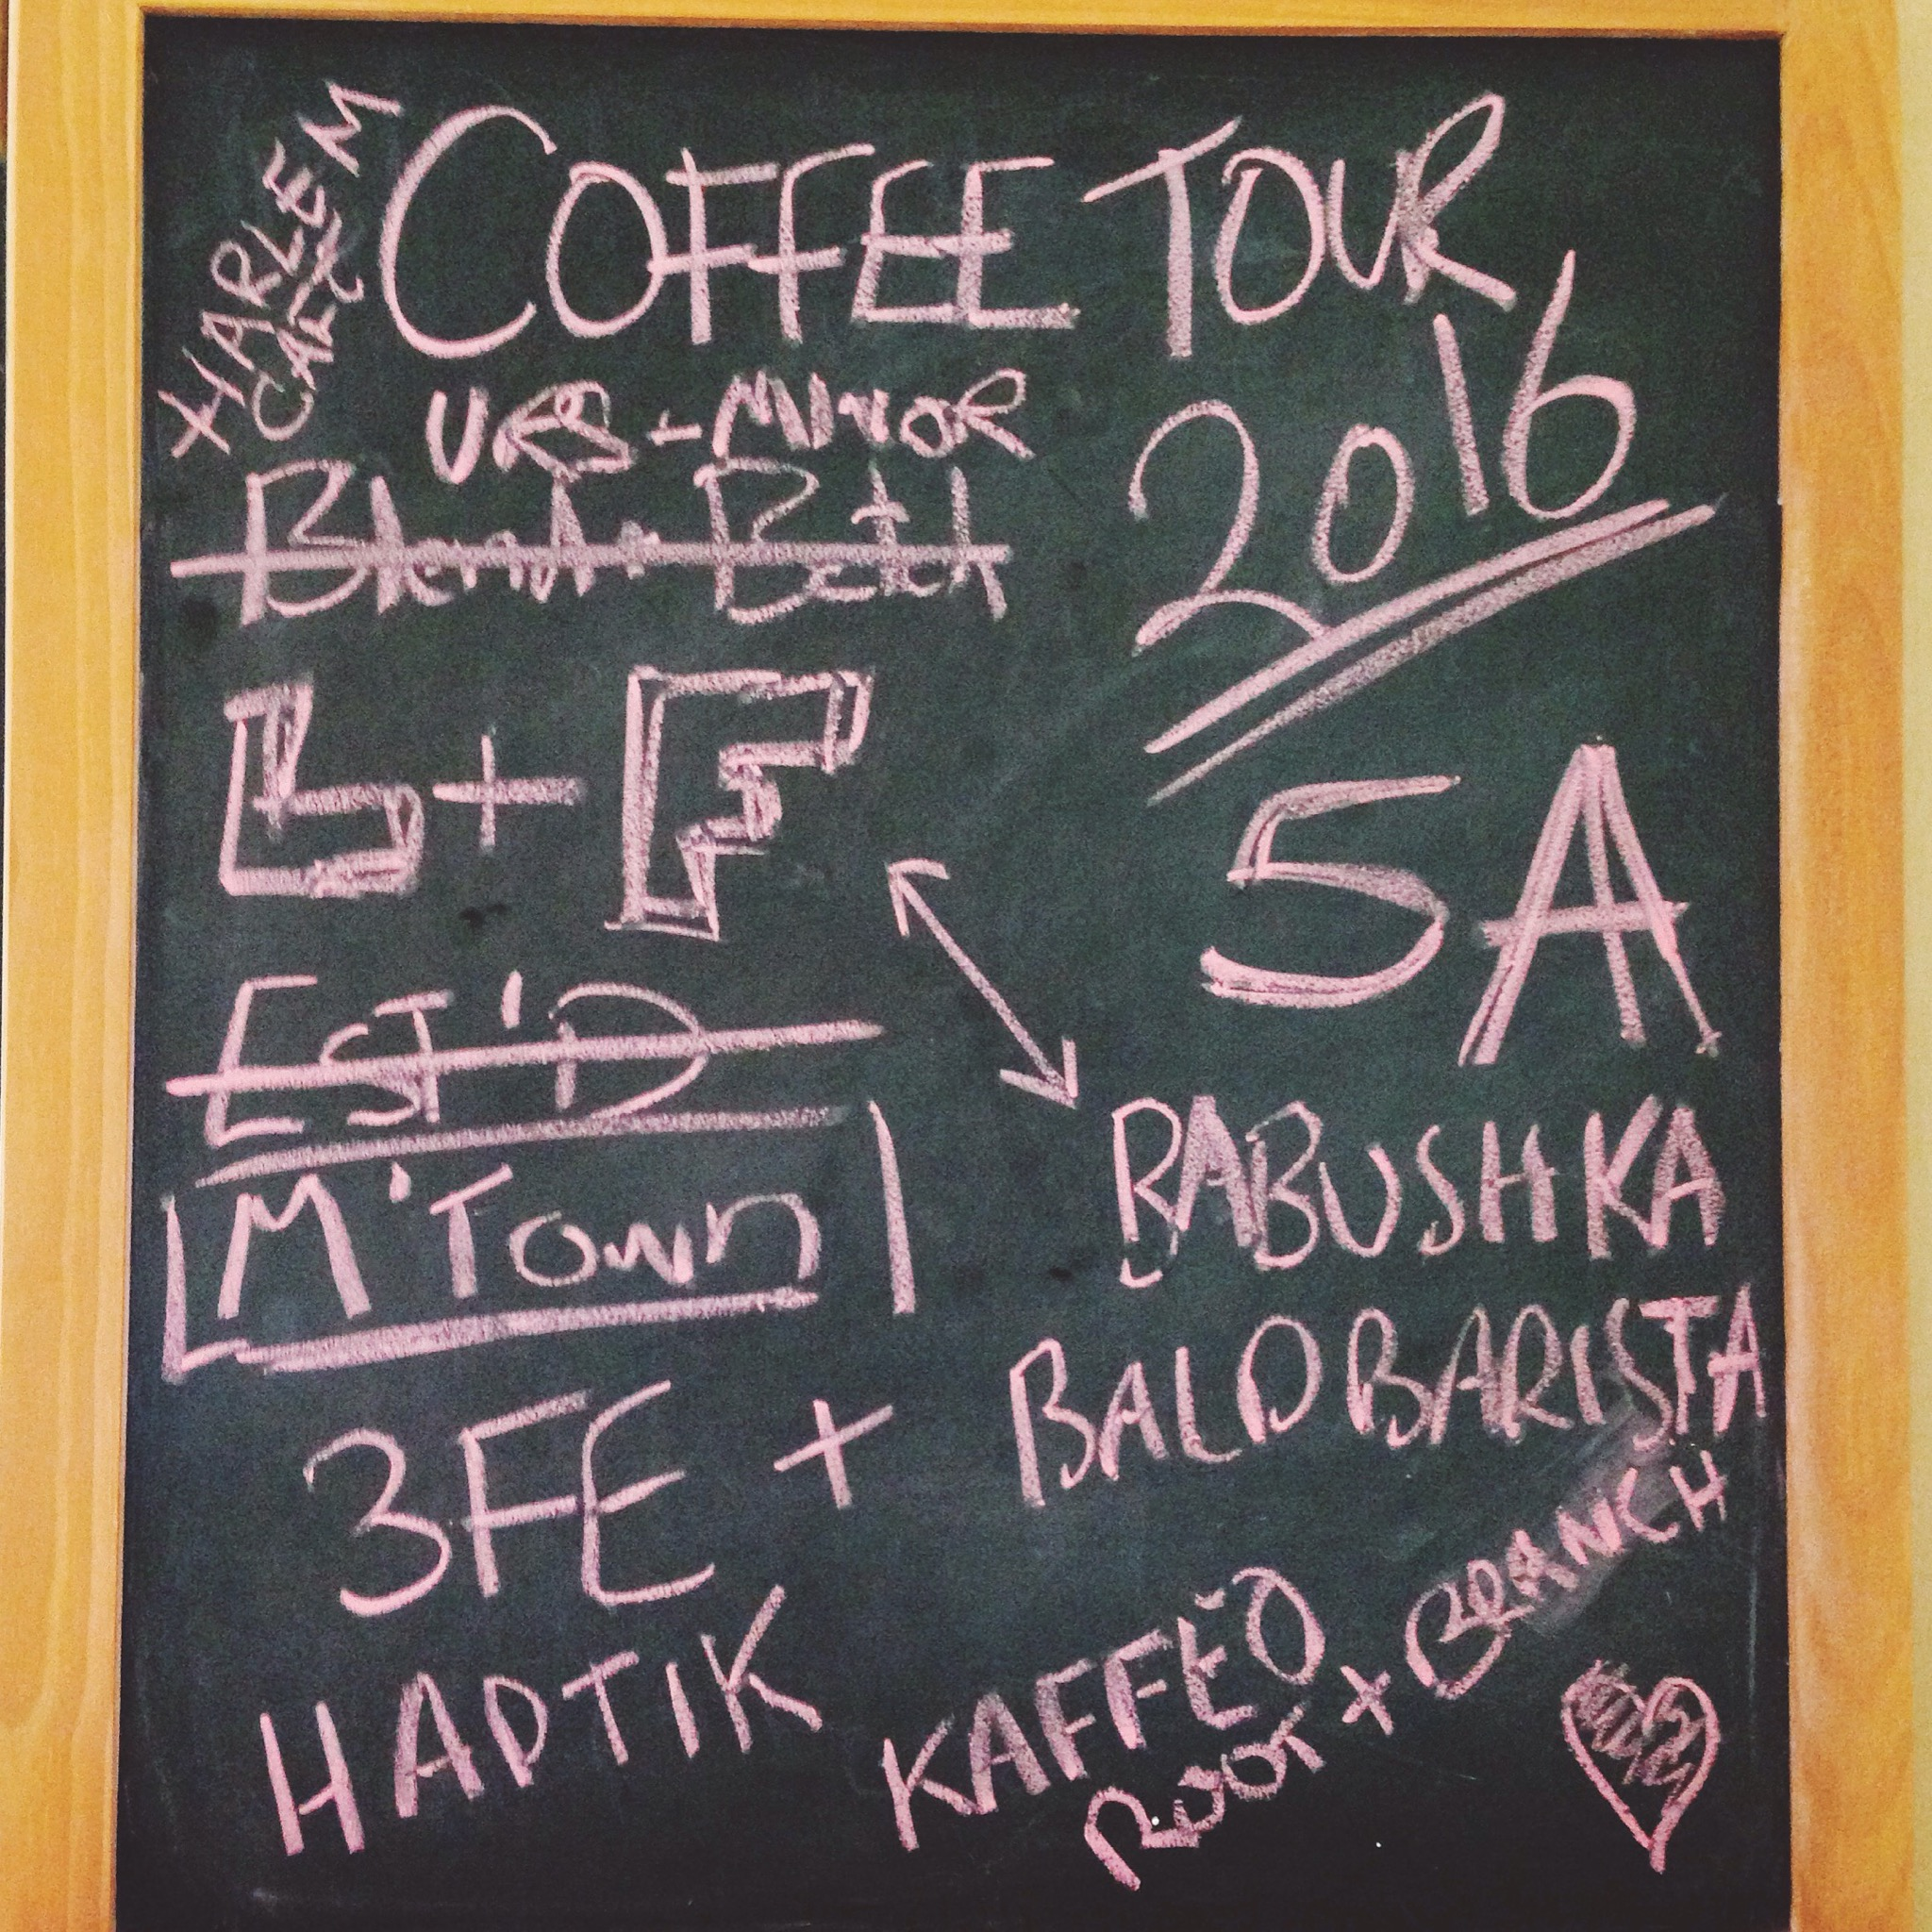 Coffee tour of summer 2016